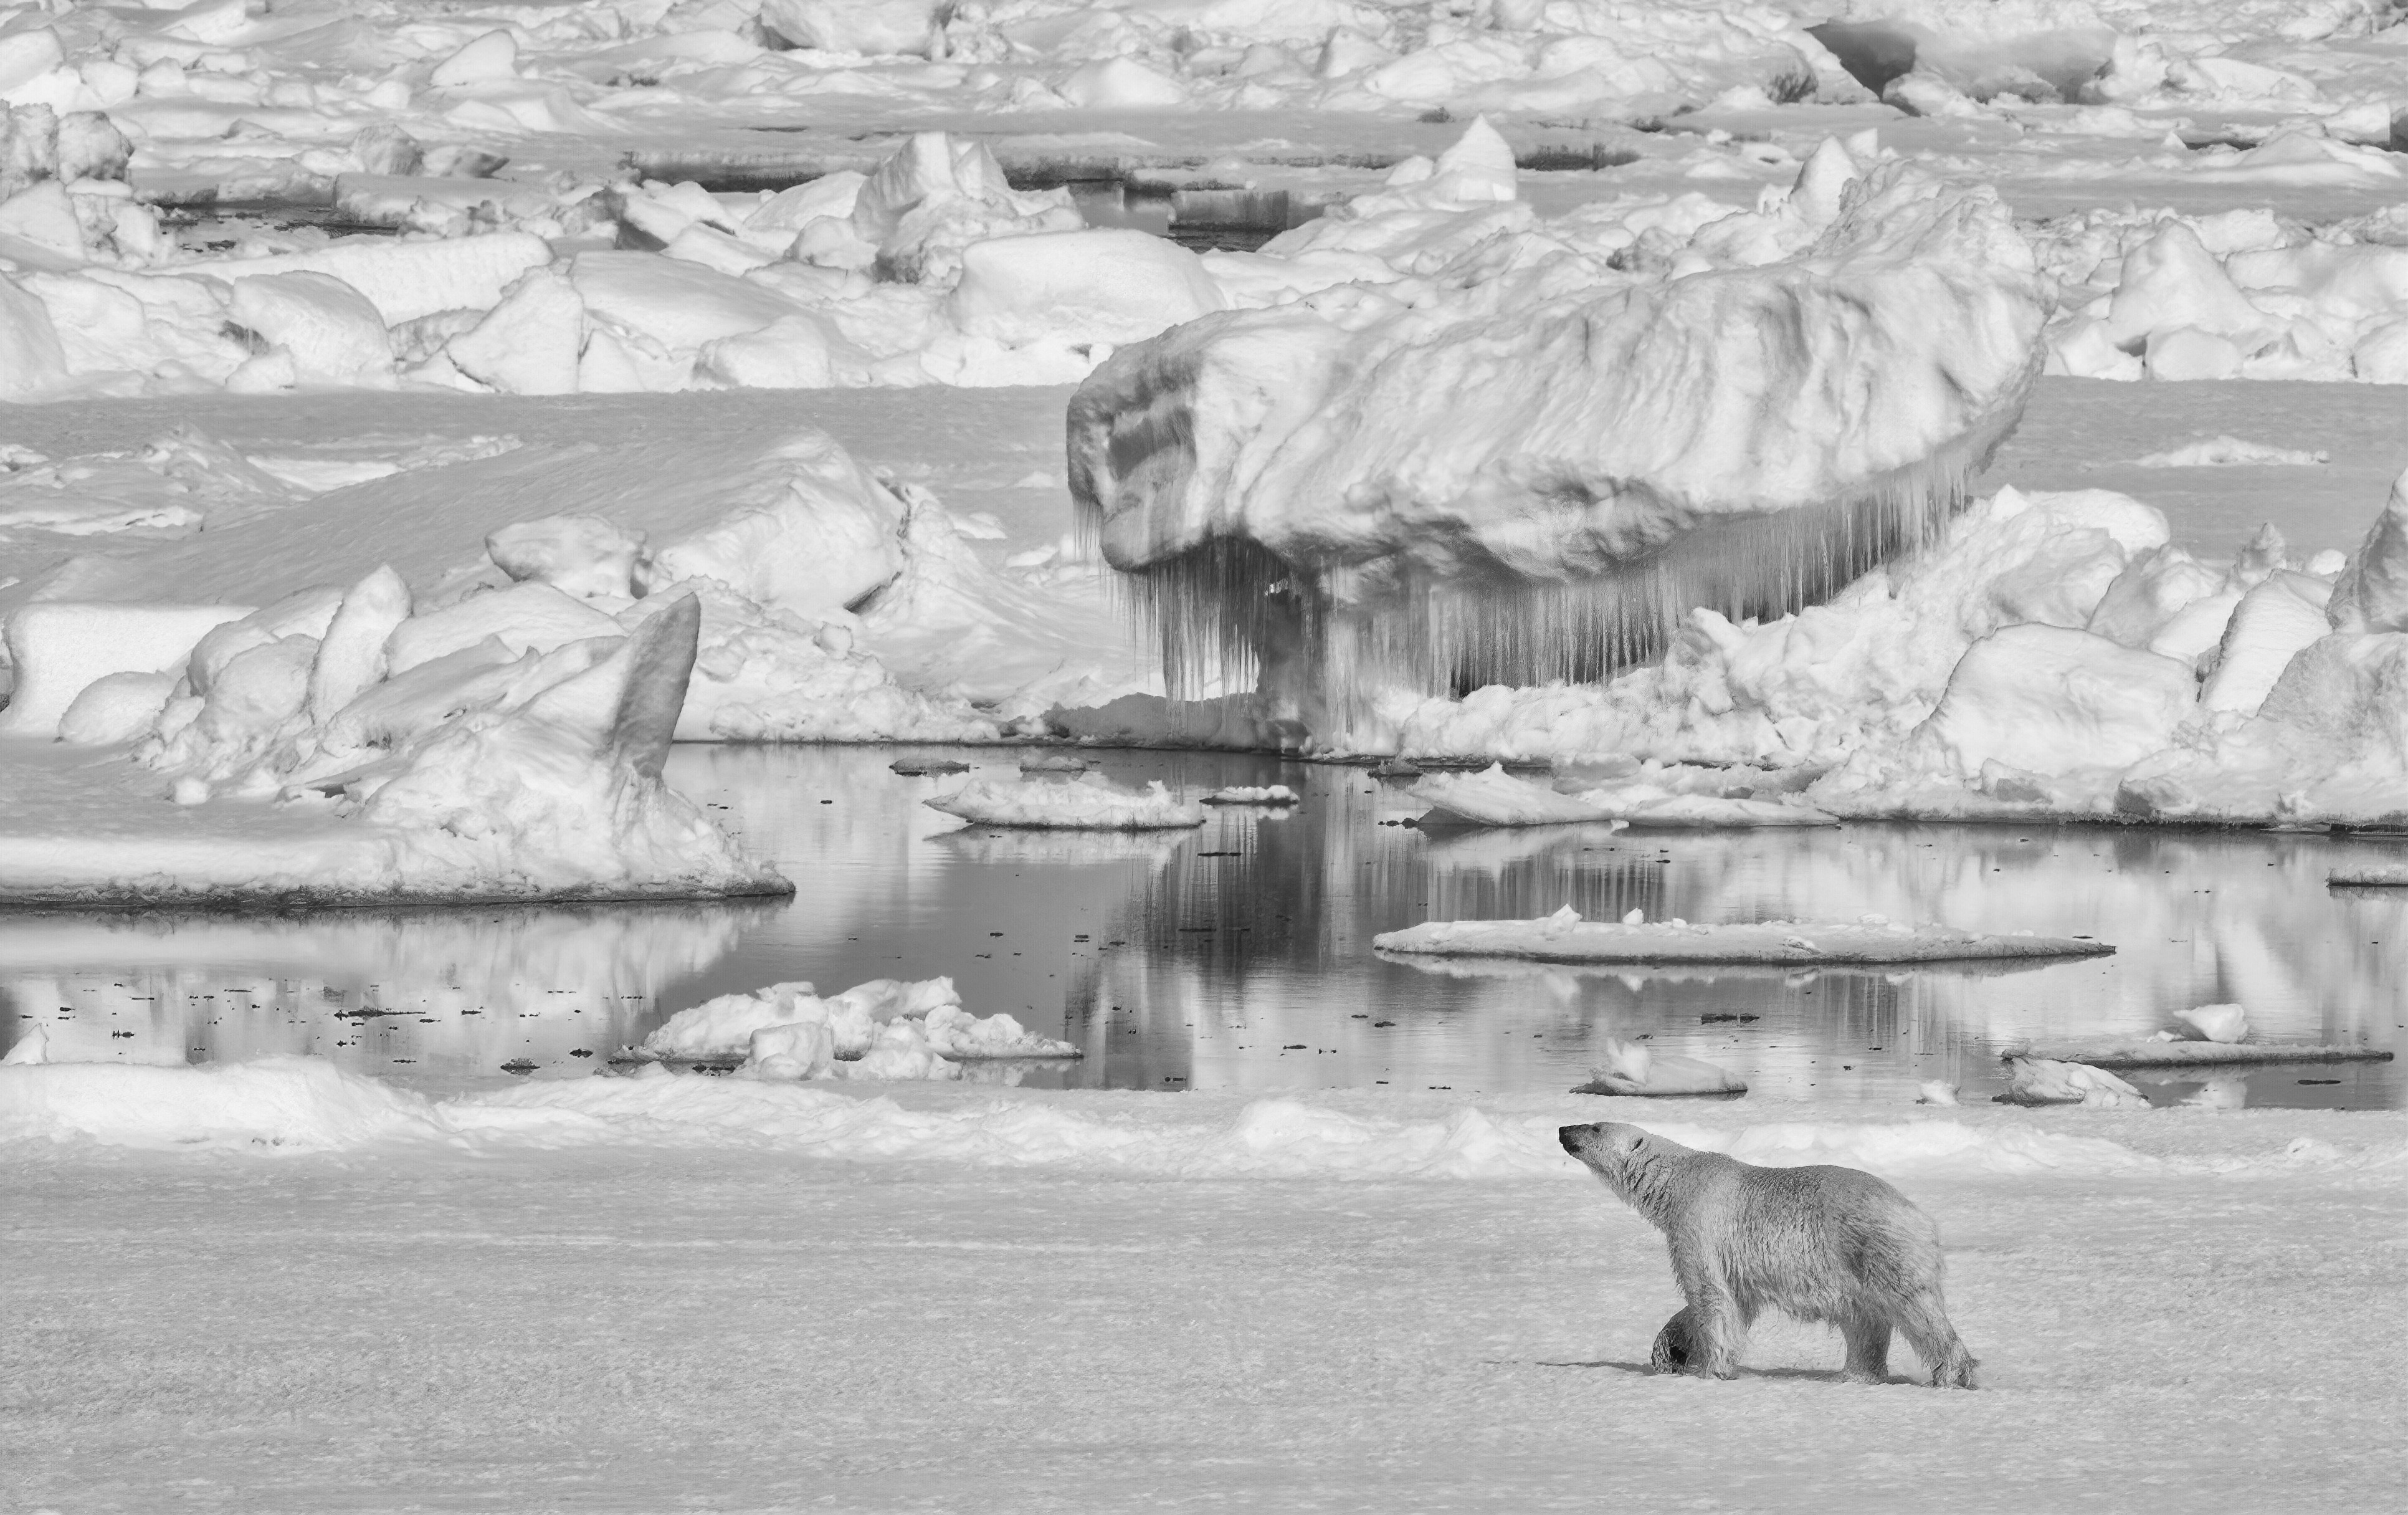 140600 download wallpaper Animals, Polar Bear, Bear, Predator, Ice, Bw, Chb screensavers and pictures for free